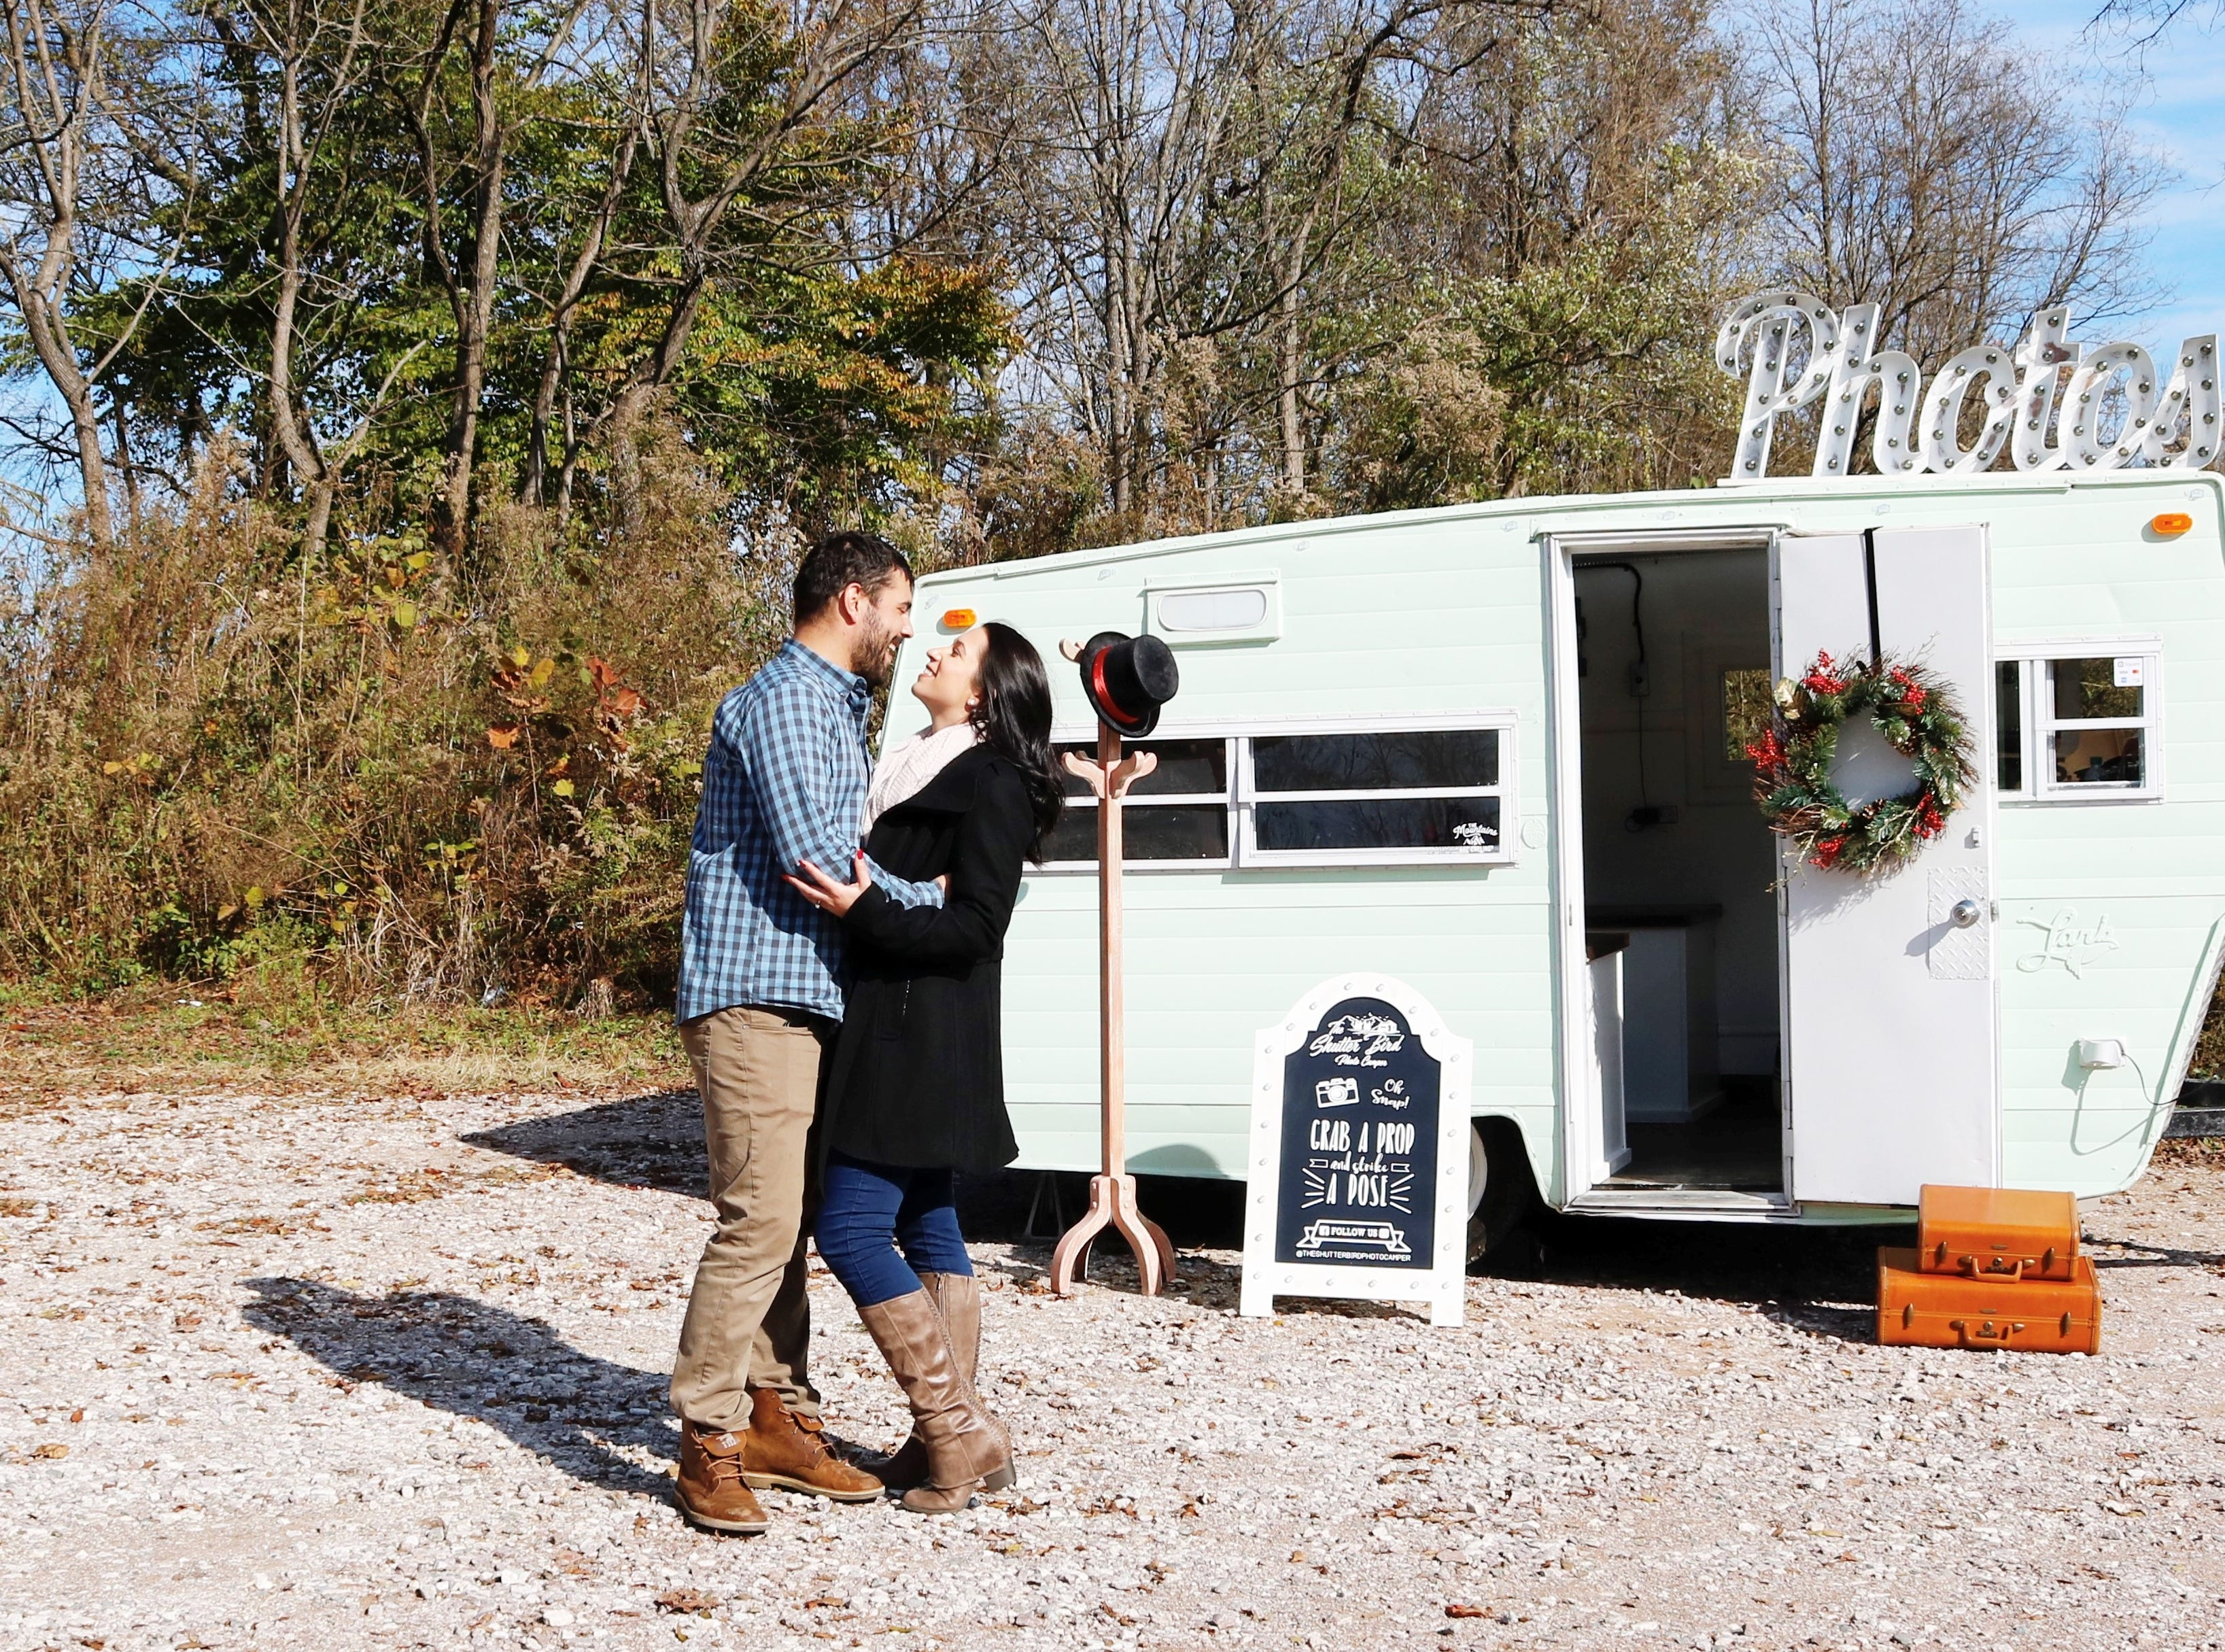 "Amanda Irizarry and fiancé Bryan Bates outside the Shutter Bird Photo Camper. ""I was thinking about this venture night and day and woke up in the middle of the night and wrote 'The Shutter Bird' down in my notes as a possible name for the business (I had a whole list of names) and in the morning I went out to my car and realized the camper is a 1970s Lark,"" she said. ""And since Lark is a type of bird it just kind of fit. And we named her Luna because she looked like a Luna to me and it's what I called her from day one. Luna the lark."""